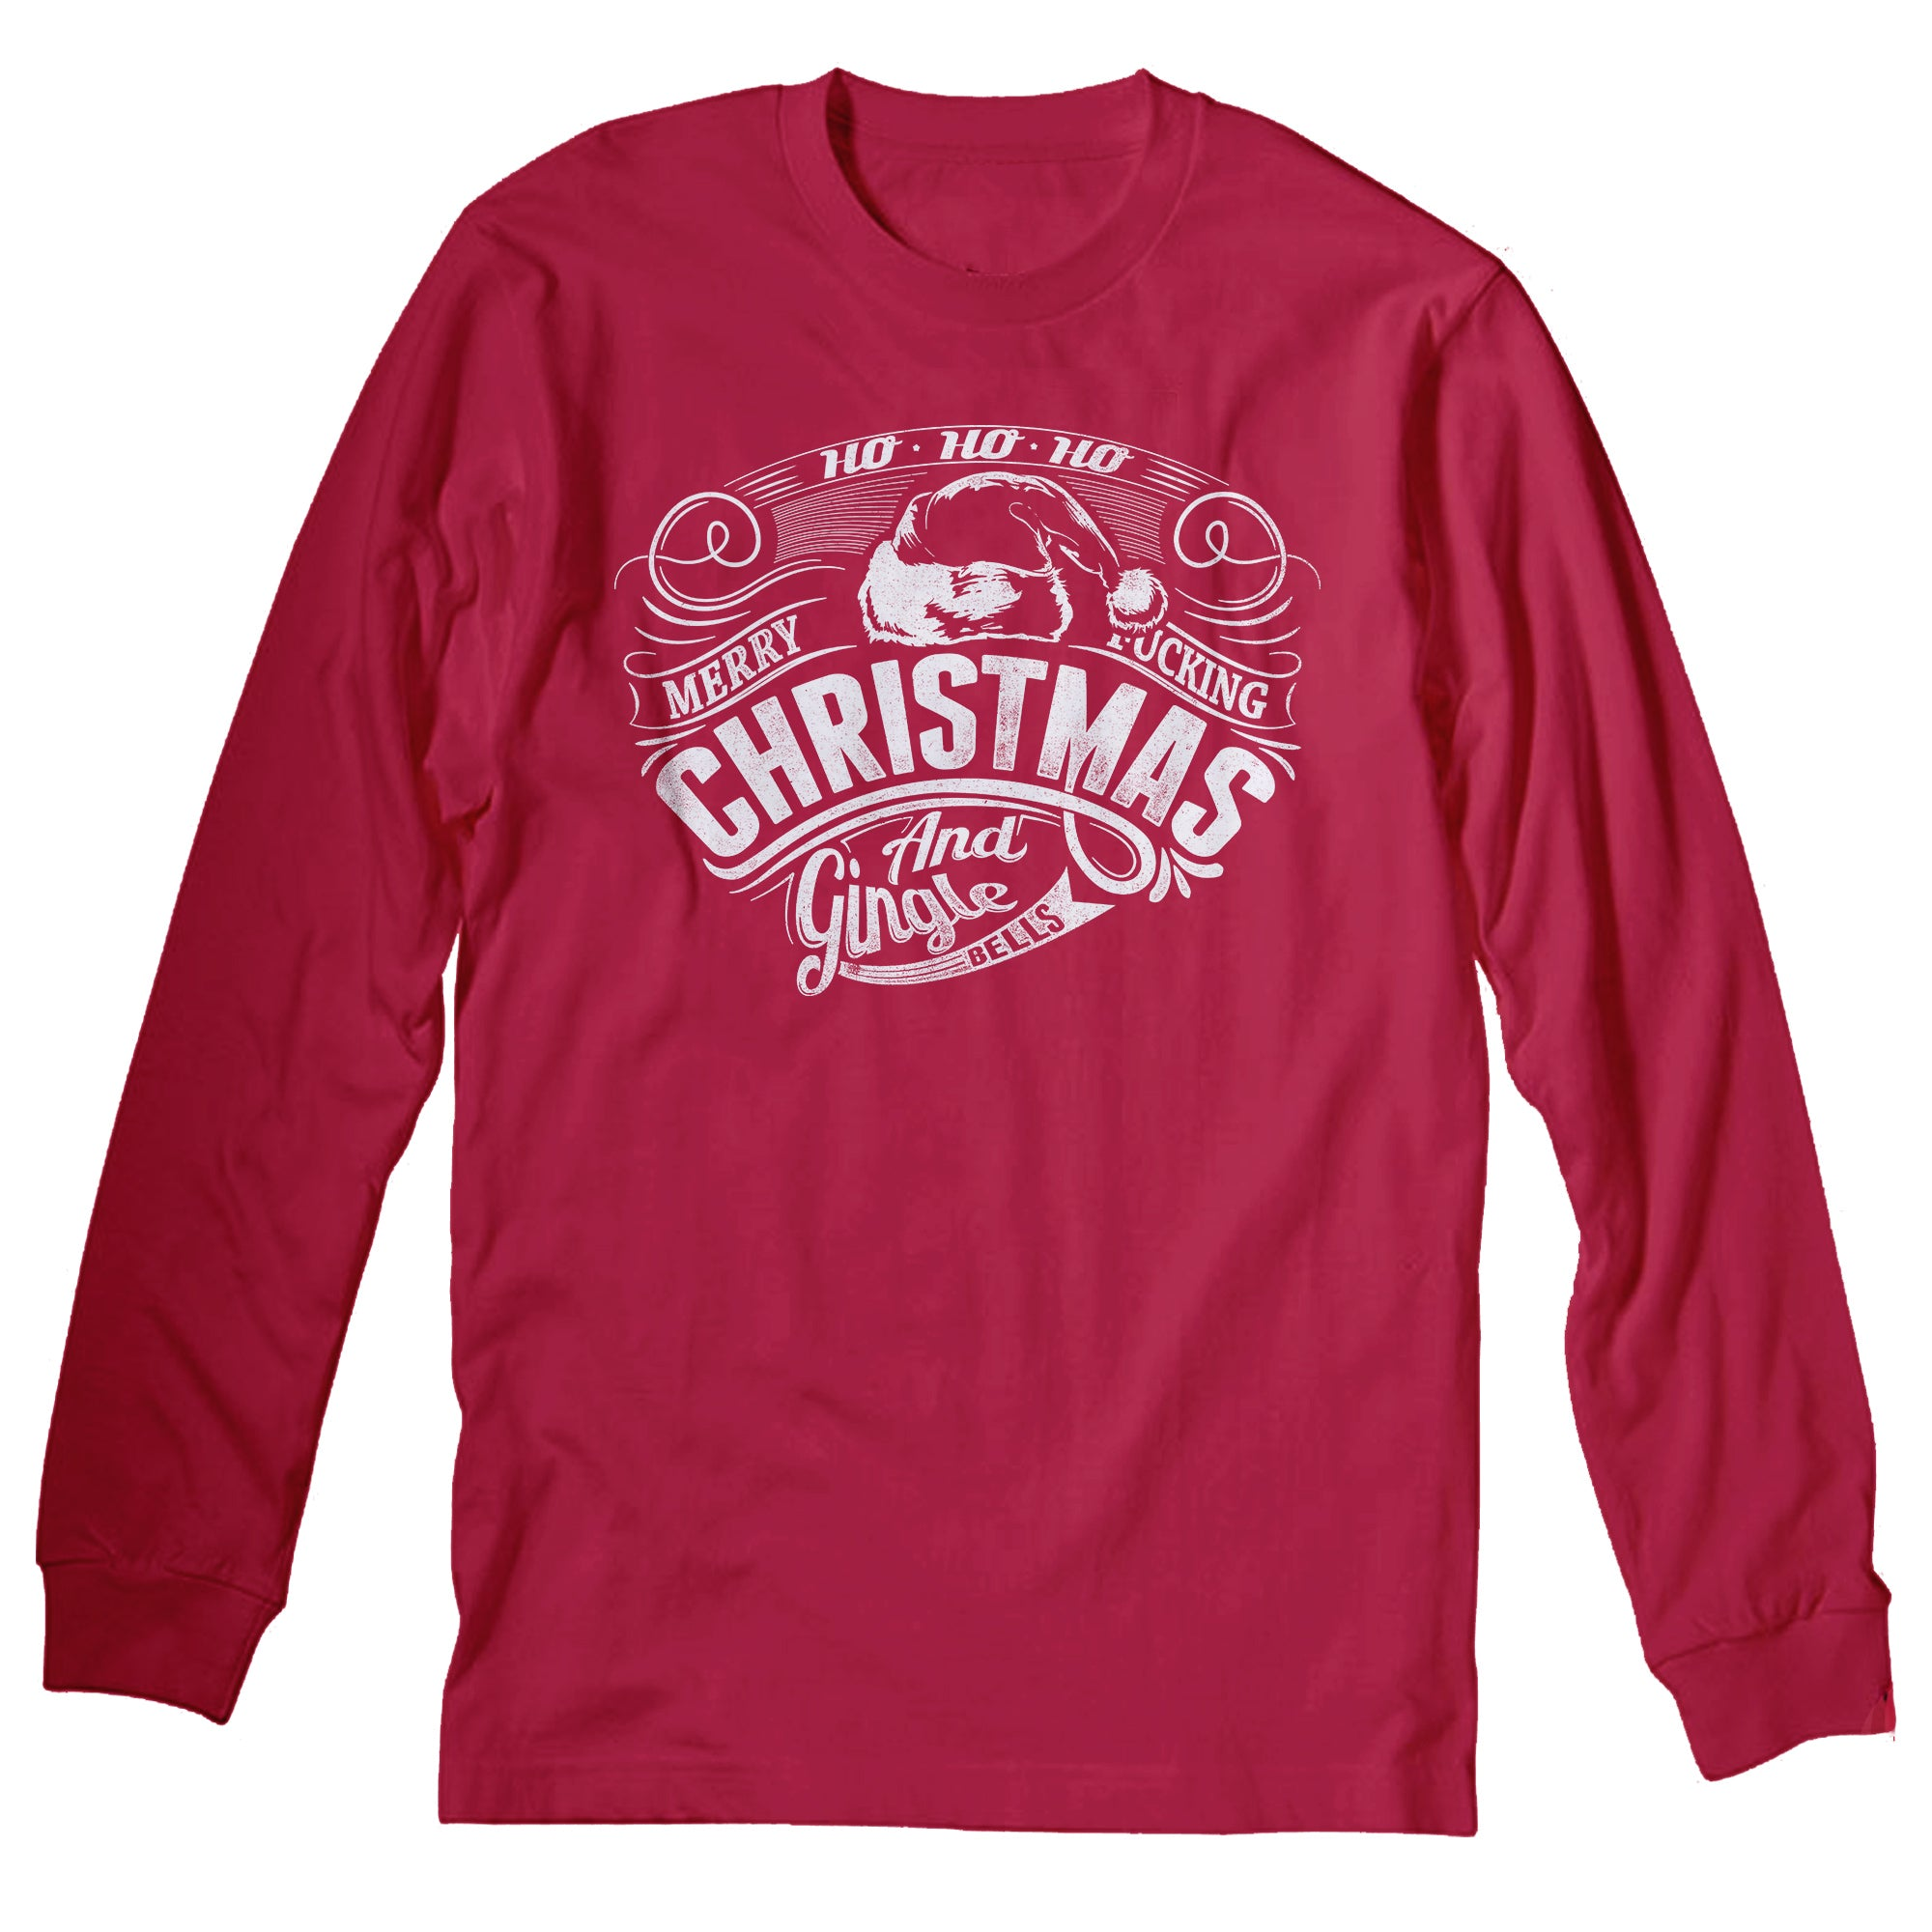 Ho Ho Ho MFC - Christmas Long Sleeve Shirt